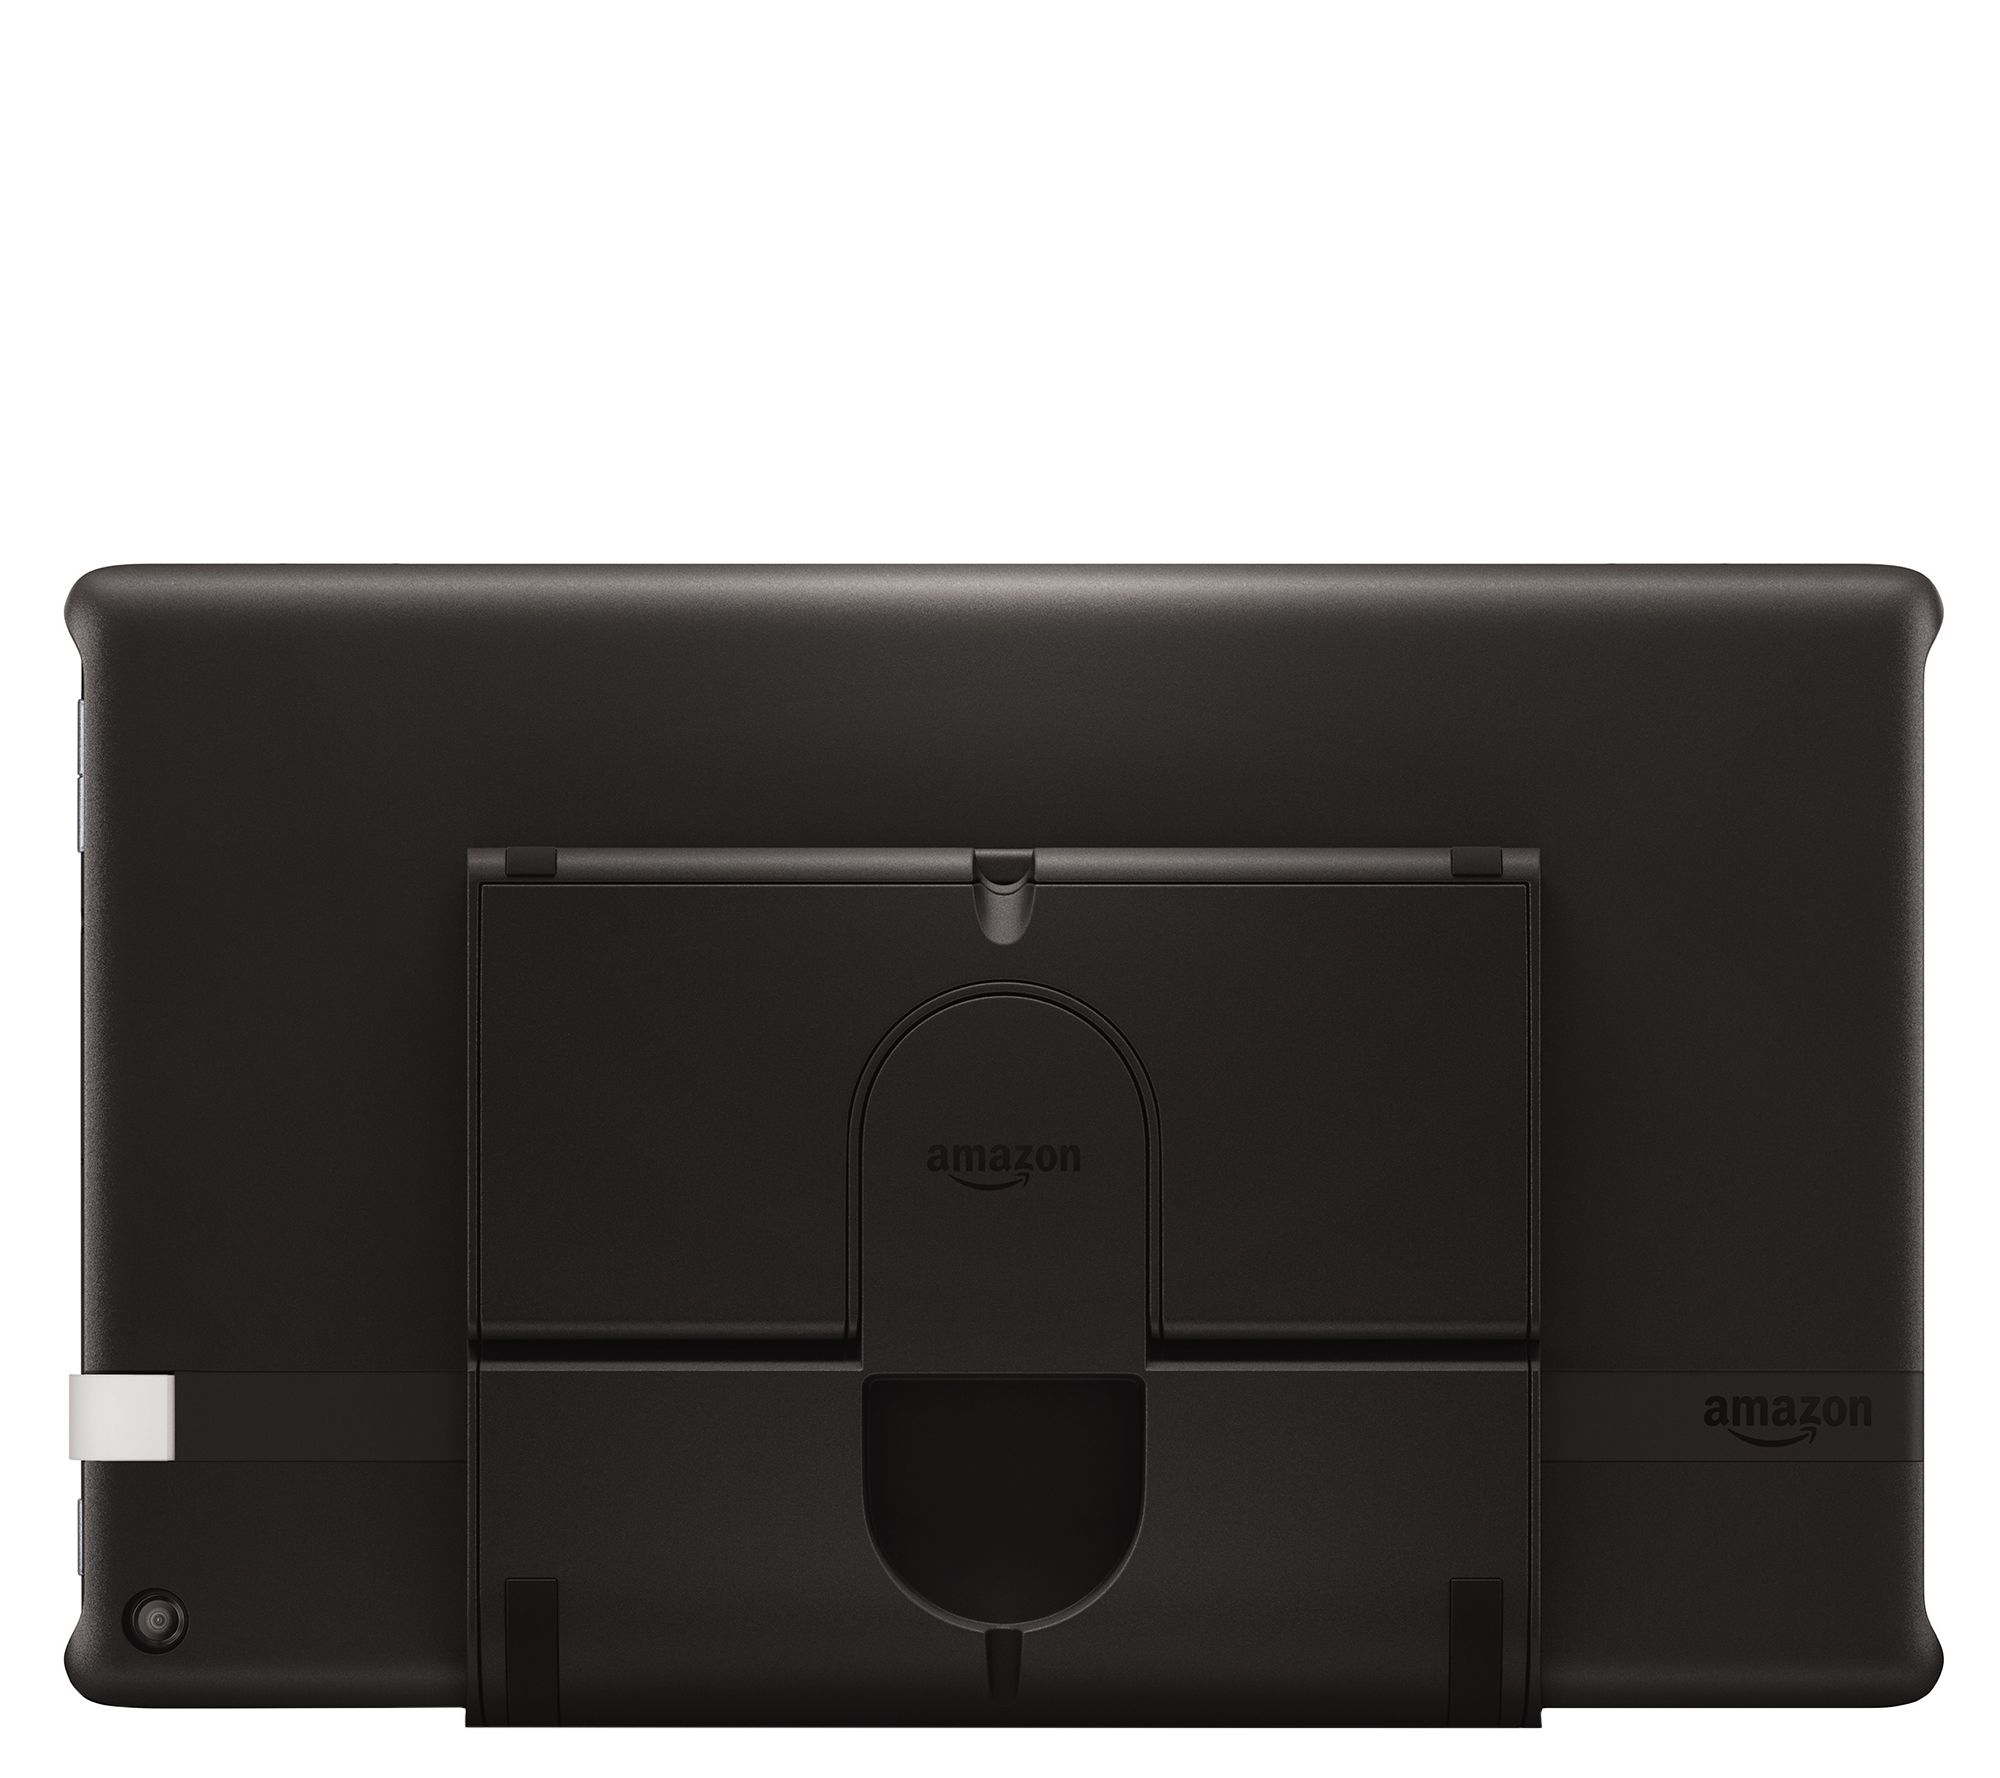 Amazon Show Mode Charging Dock for Fire HD 8 Compatible with 7th and 8th